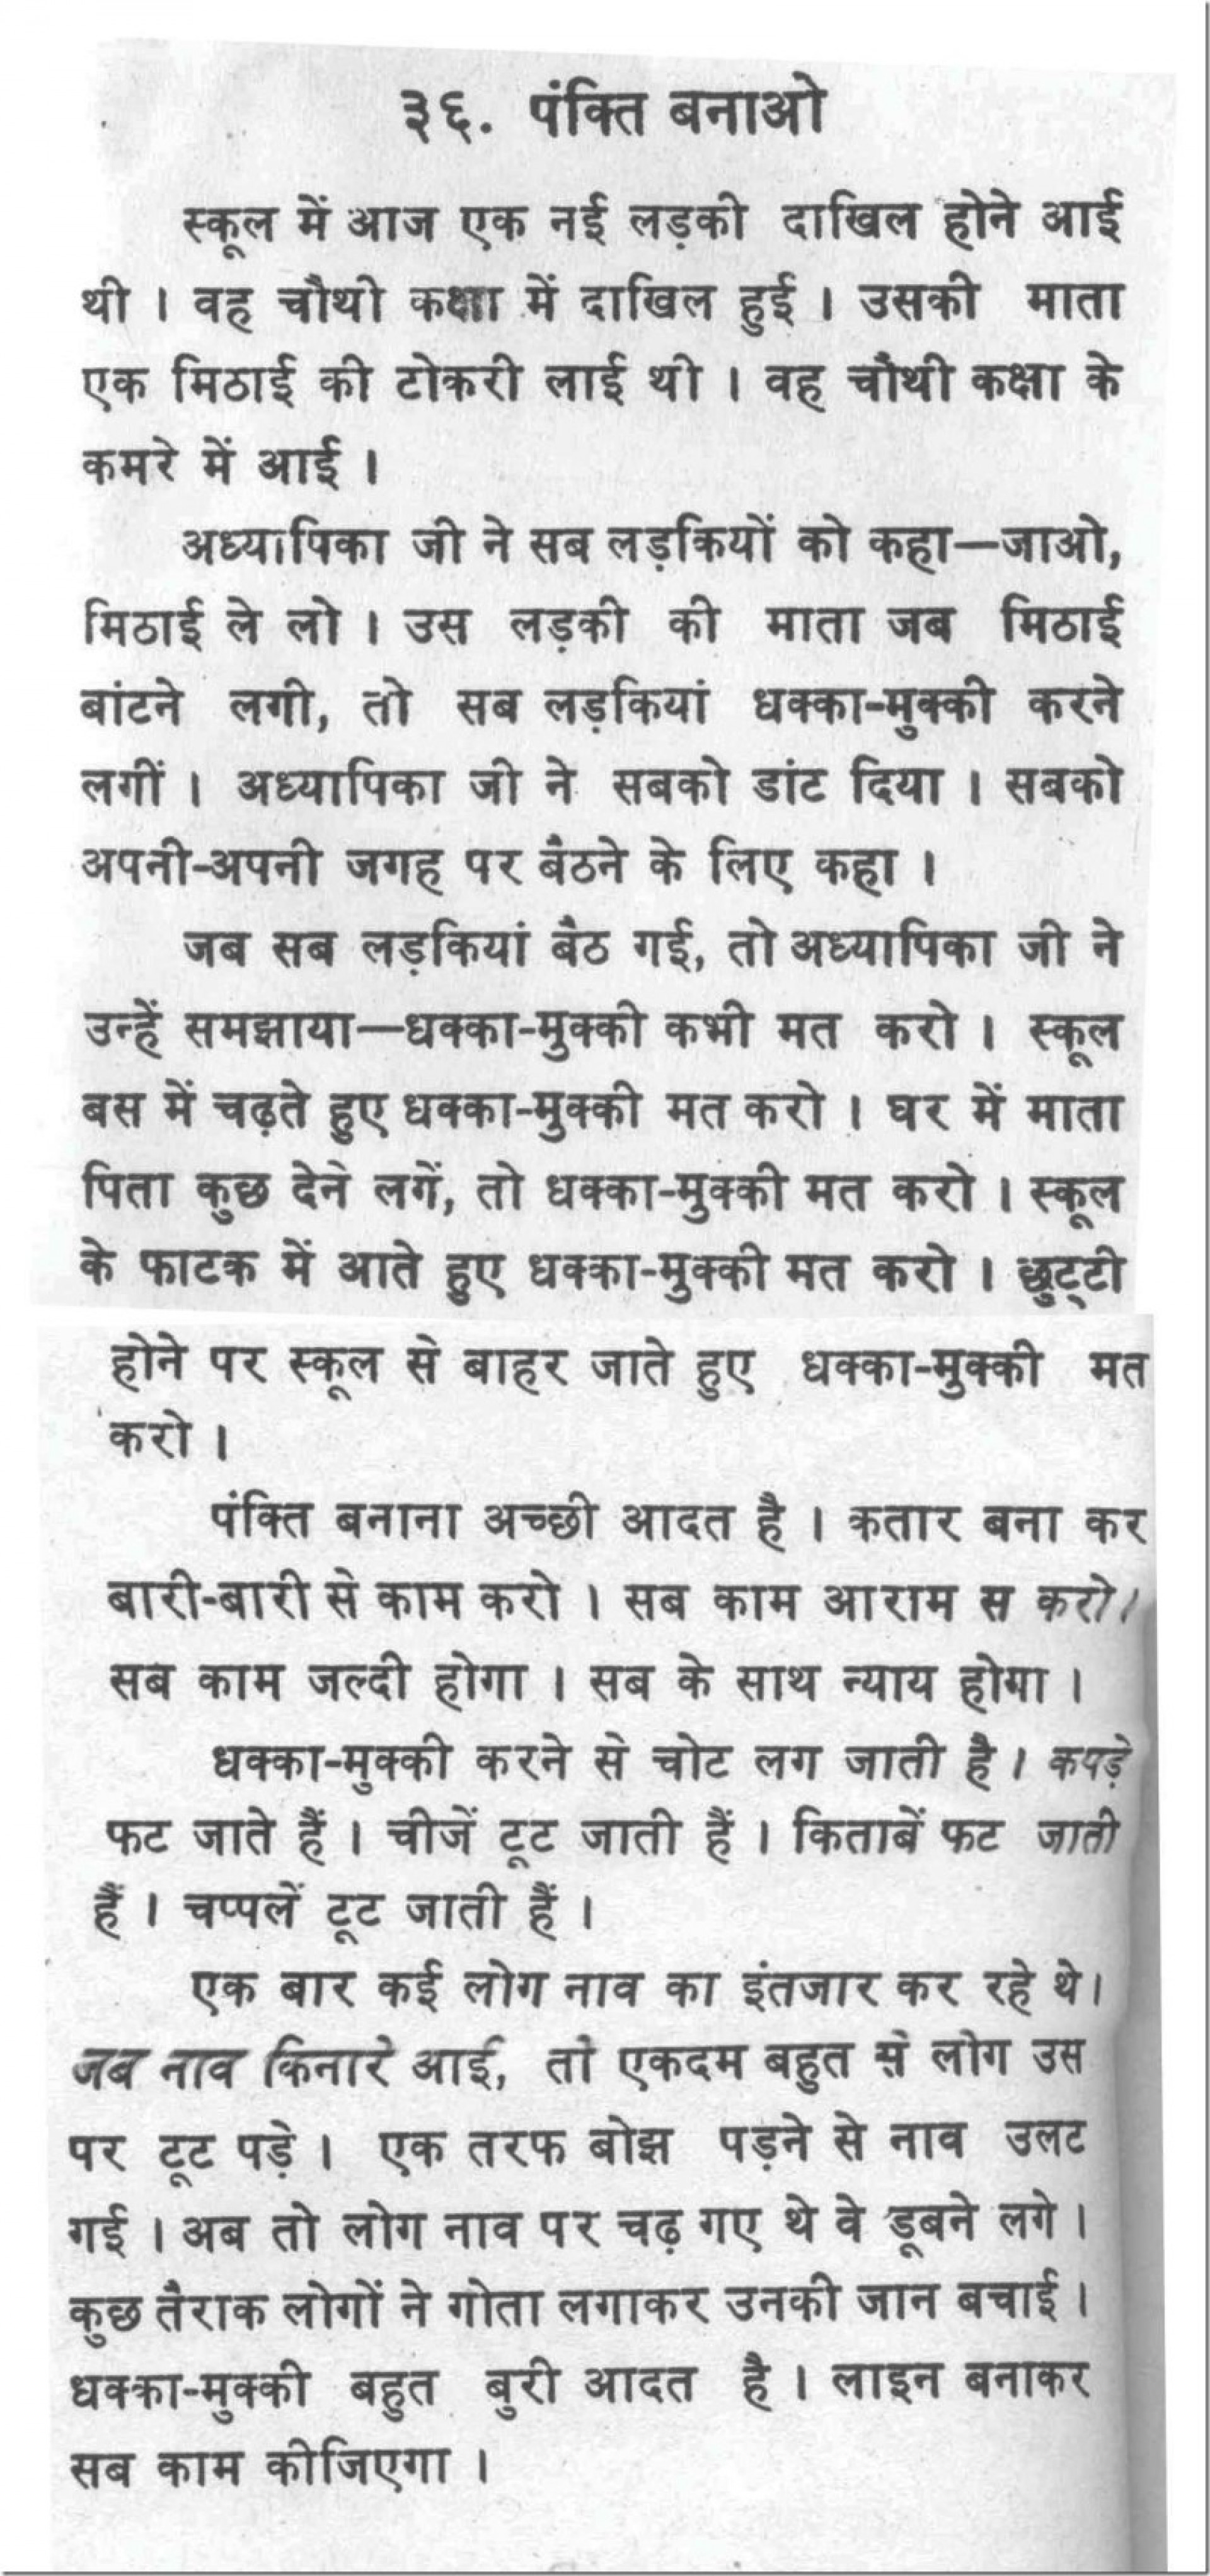 003 10030 Thumbresize8002c1704 Good Habits Essay In Hindi Exceptional Healthy Eating Reading Is A Habit 1920